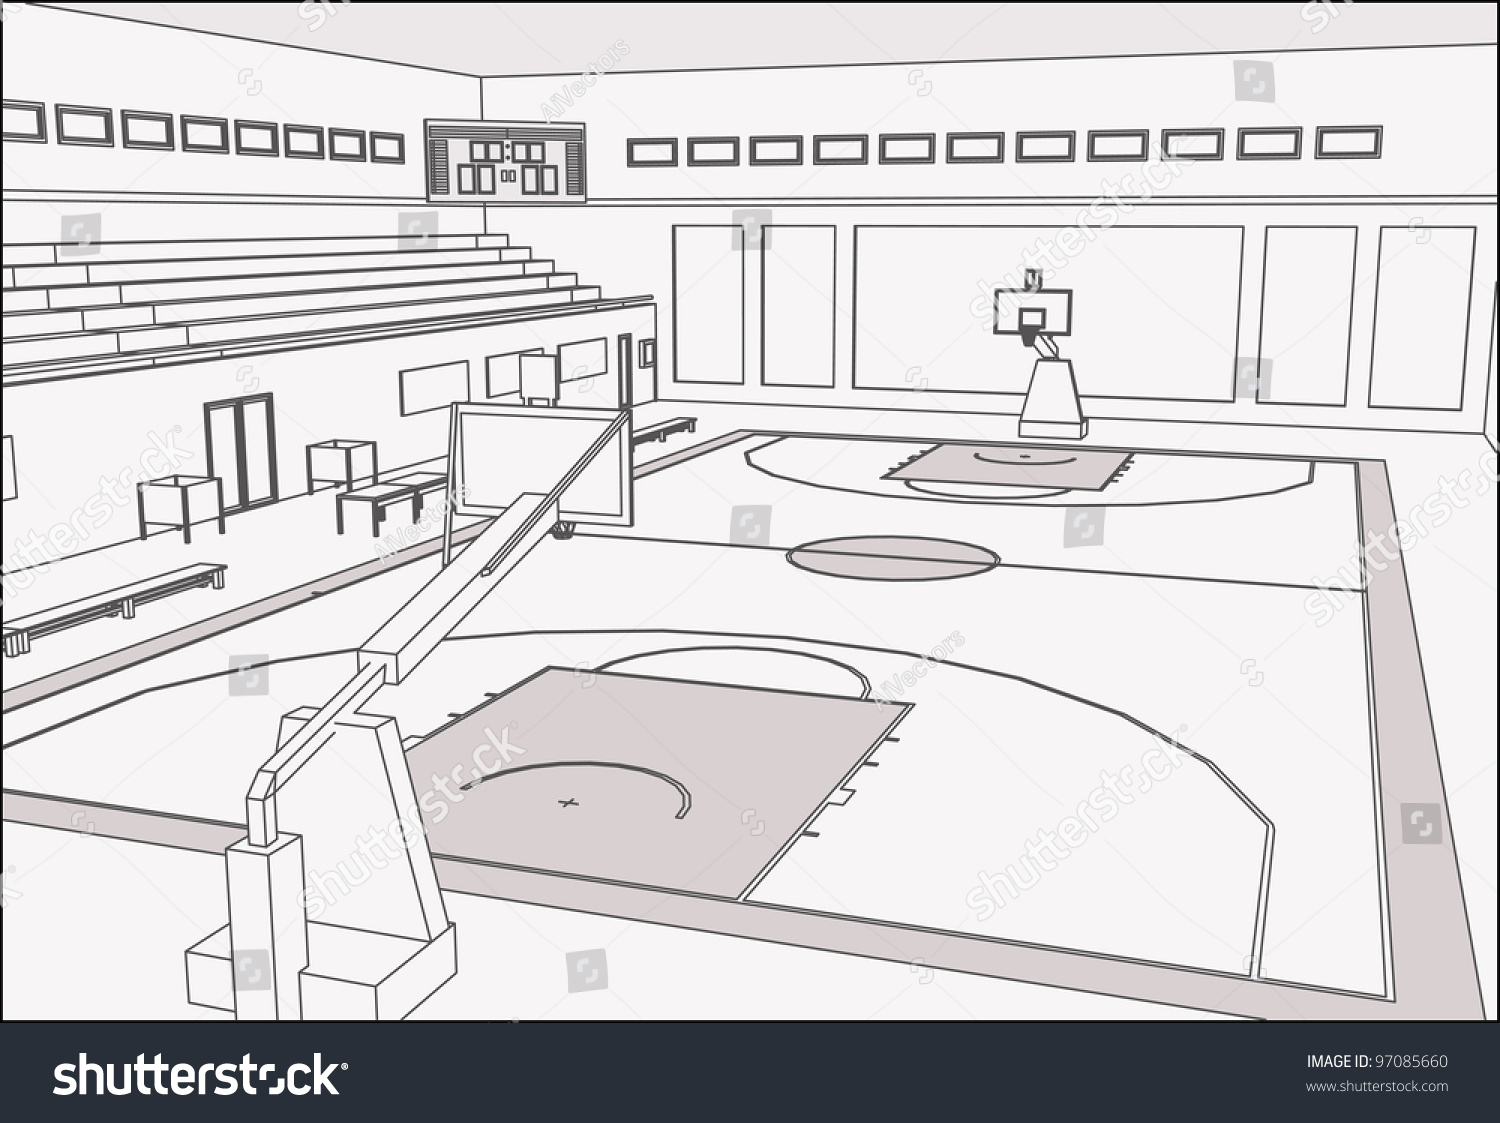 3d basketball court clipart png transparent download Basketball Court Sketch at PaintingValley.com | Explore collection ... png transparent download